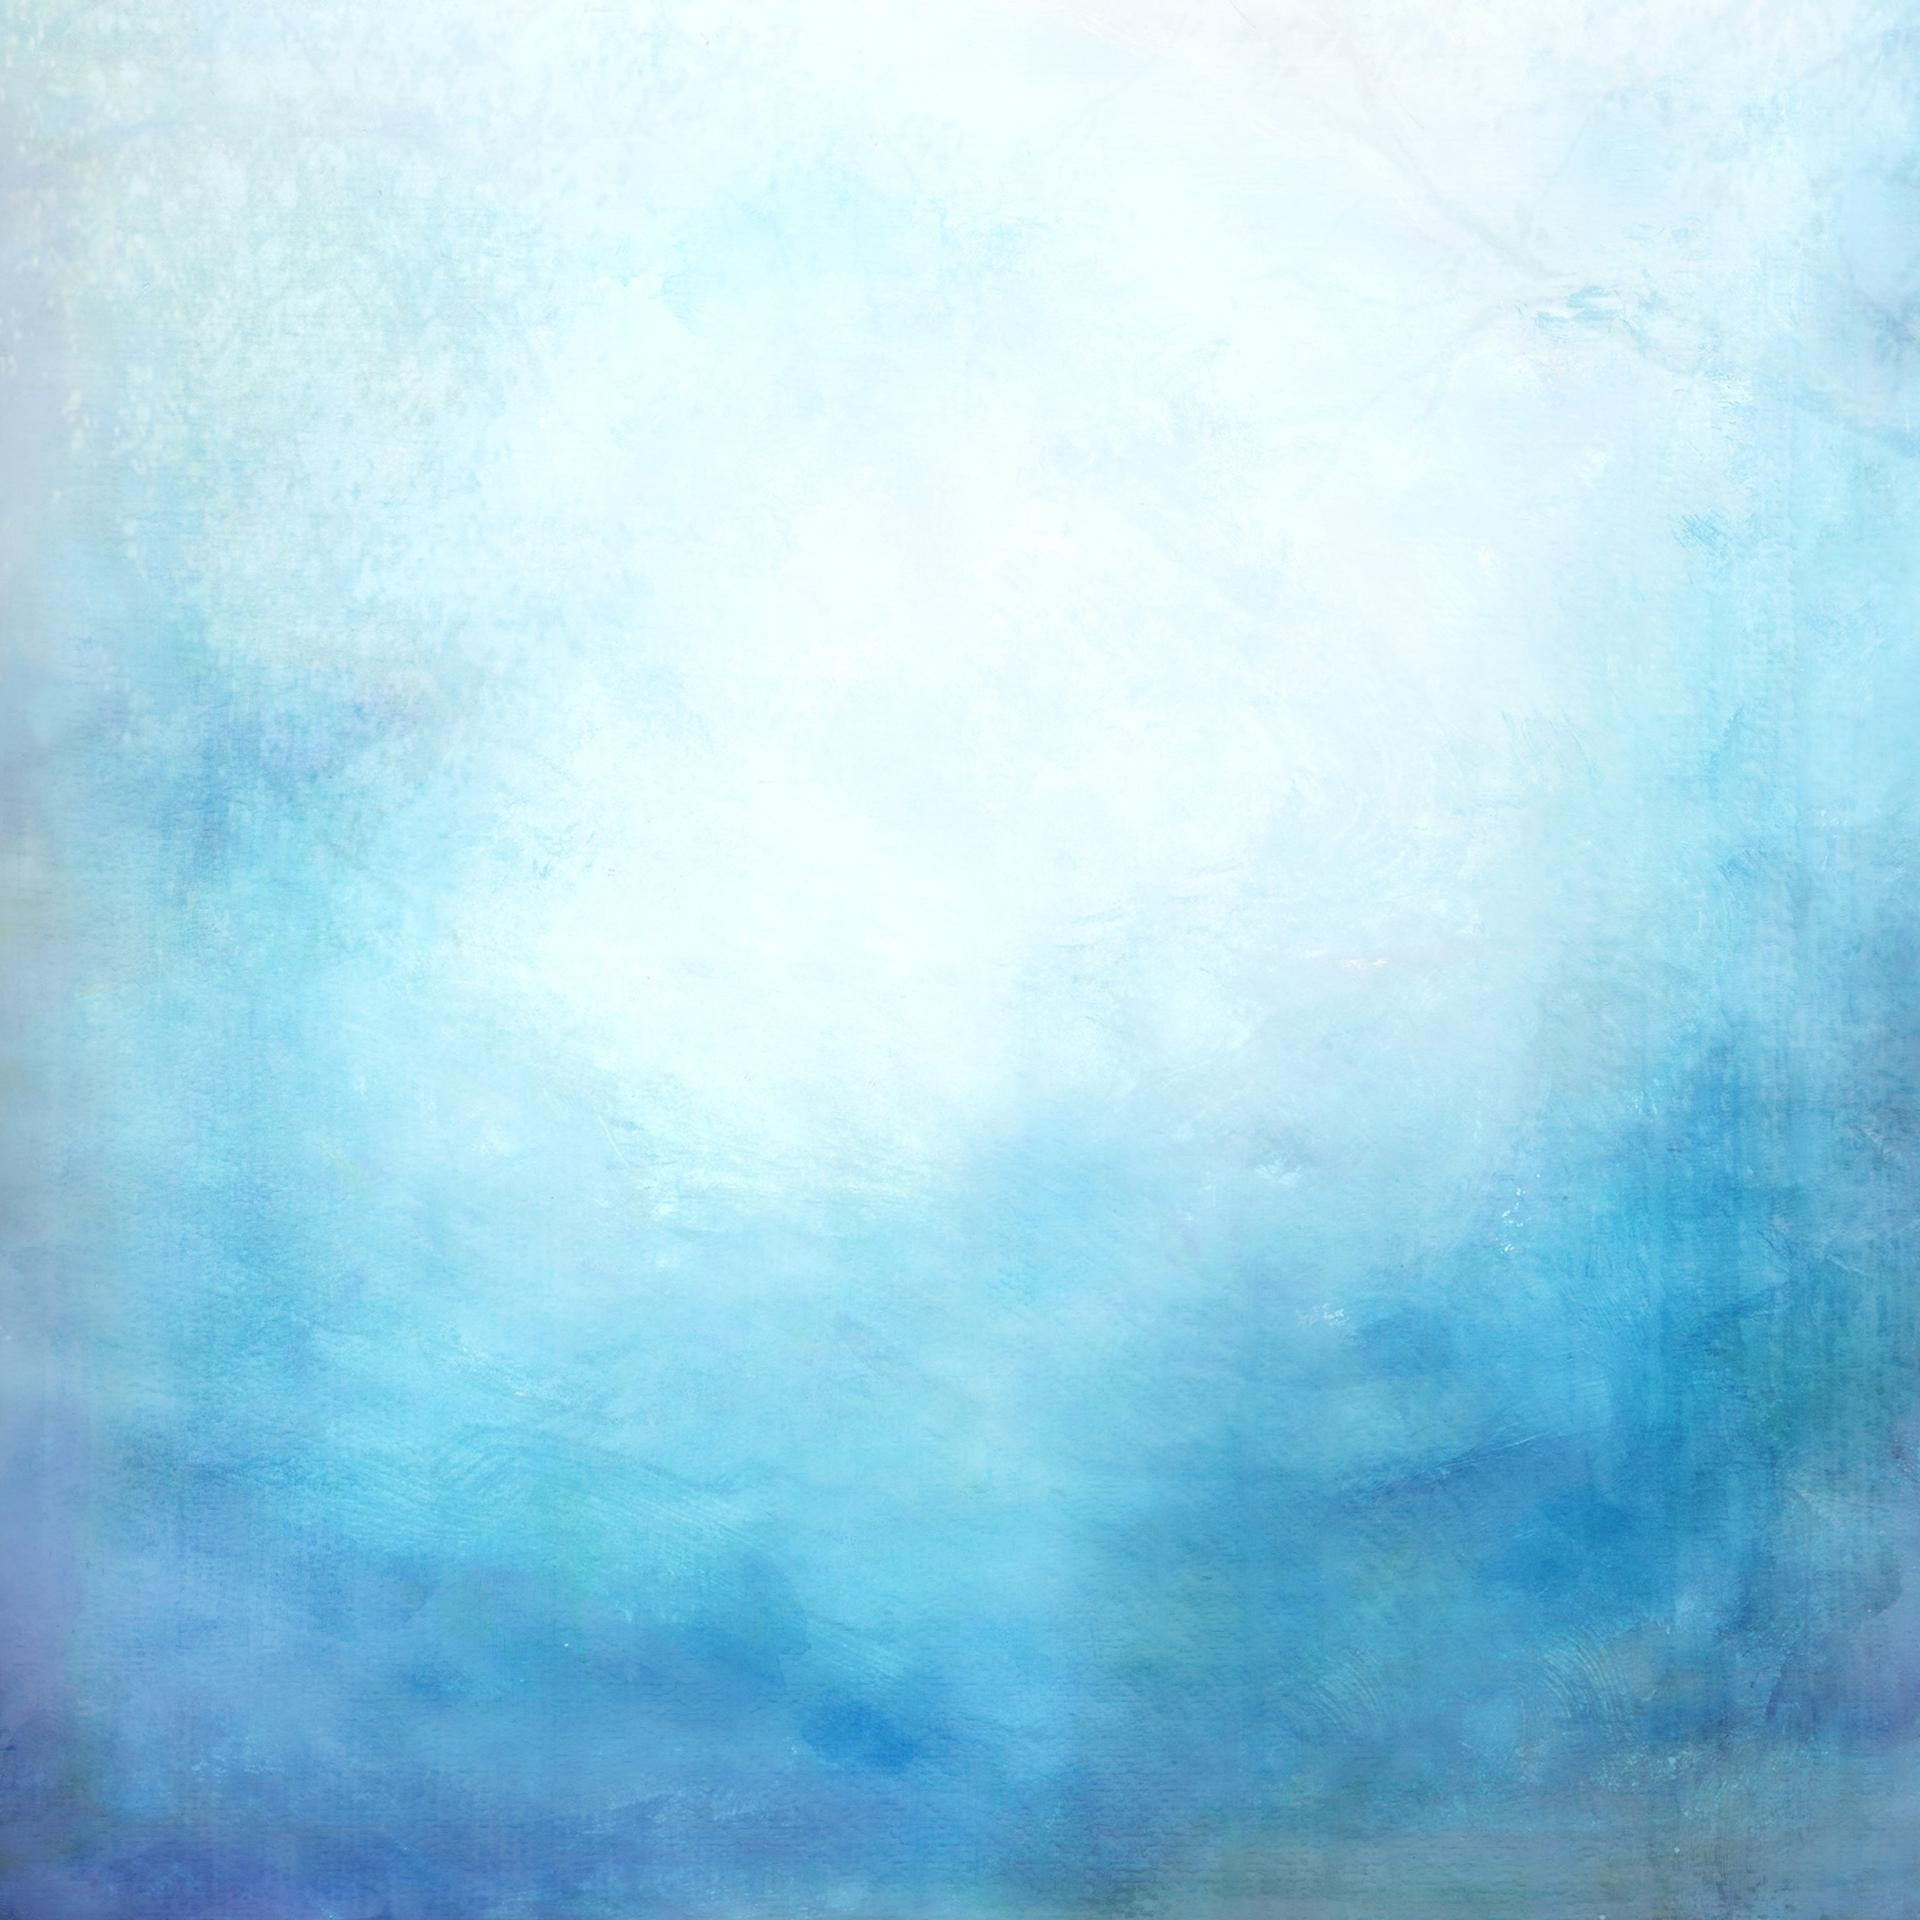 Watercolor background download free stunning for Cool watercolour